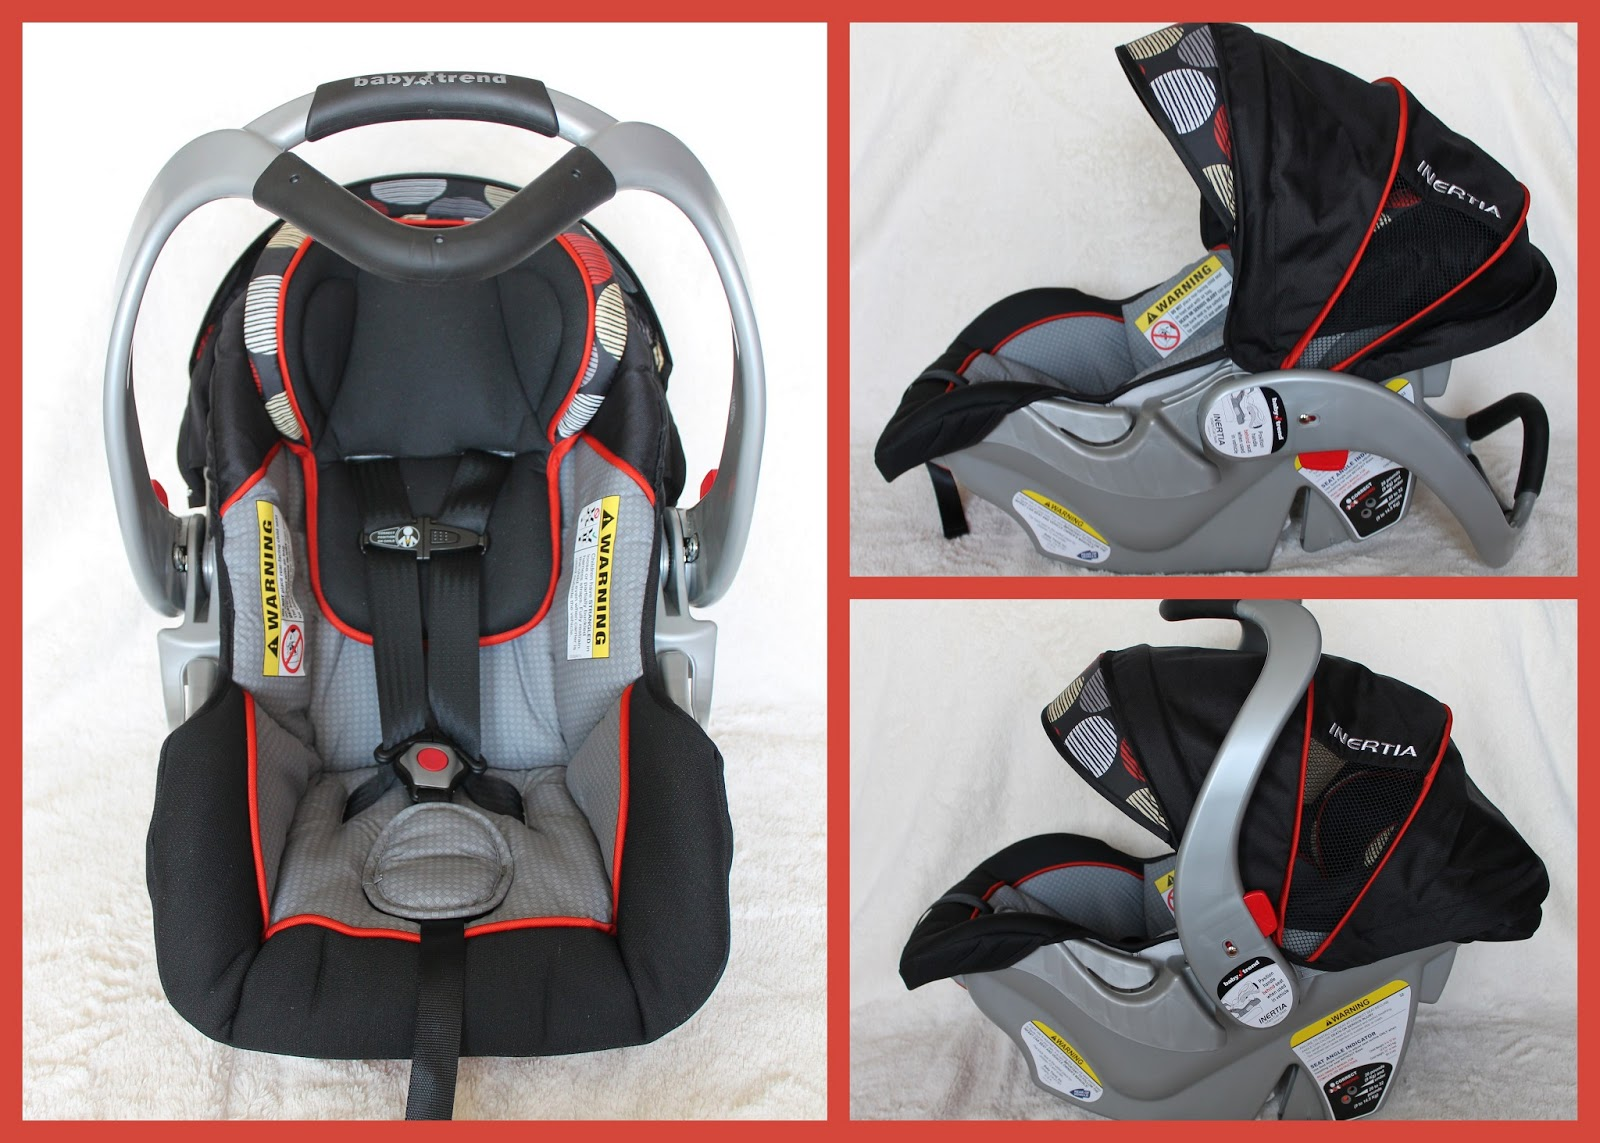 Baby Trend Infant Car Seat Expiration